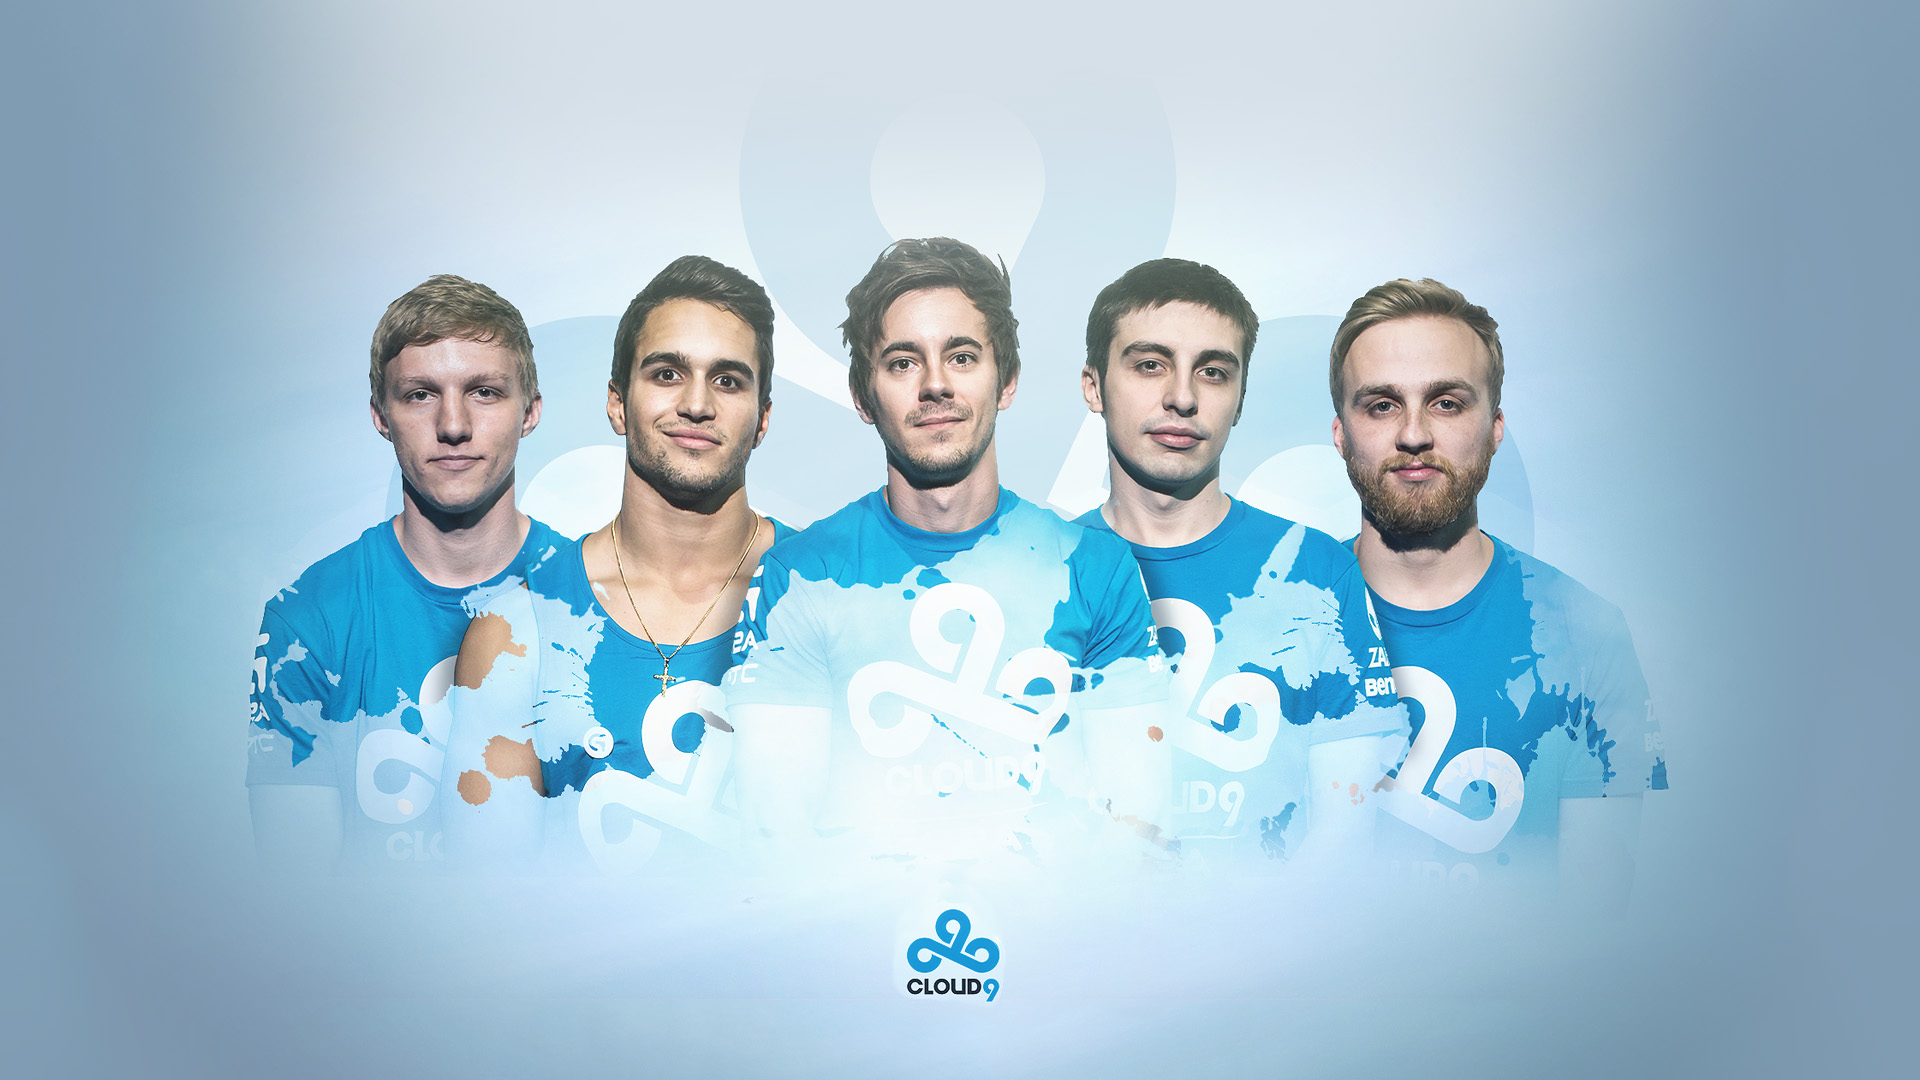 cloud9-team-wallpaper.jpg